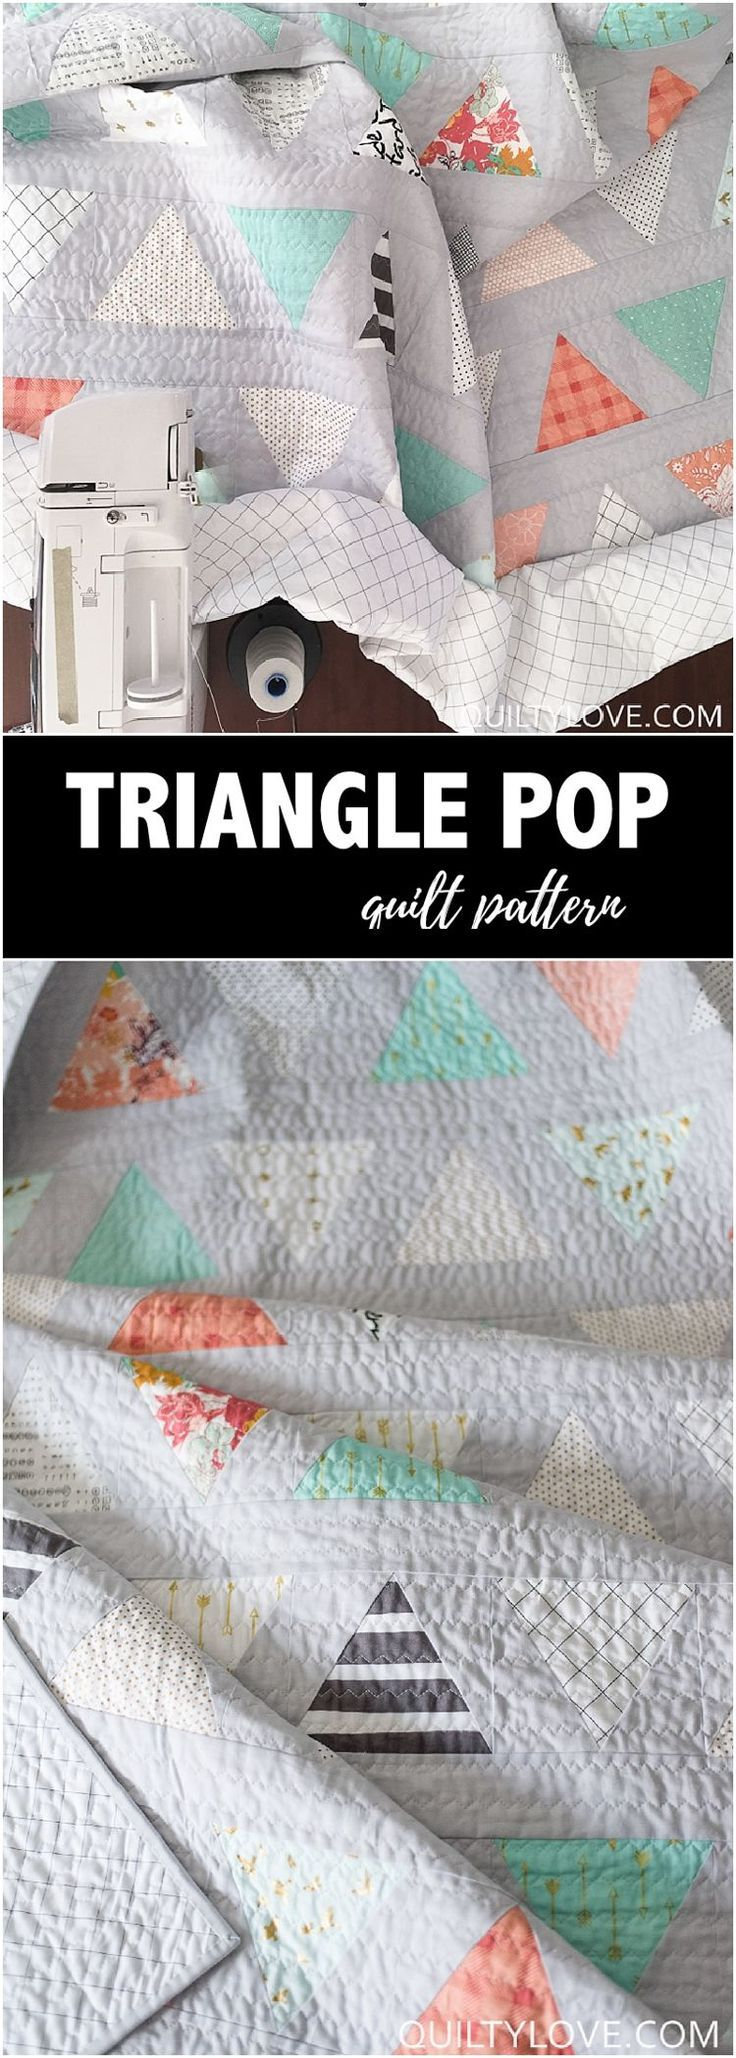 Quilty Love | Twin size Triangle Pop Quilt – The low volume quilt | http://www.quiltylove.com | Modern triangle quilt. Low volume quilt. #trianglequilt #quilt #modernquilt #quiltylove #trianglepop